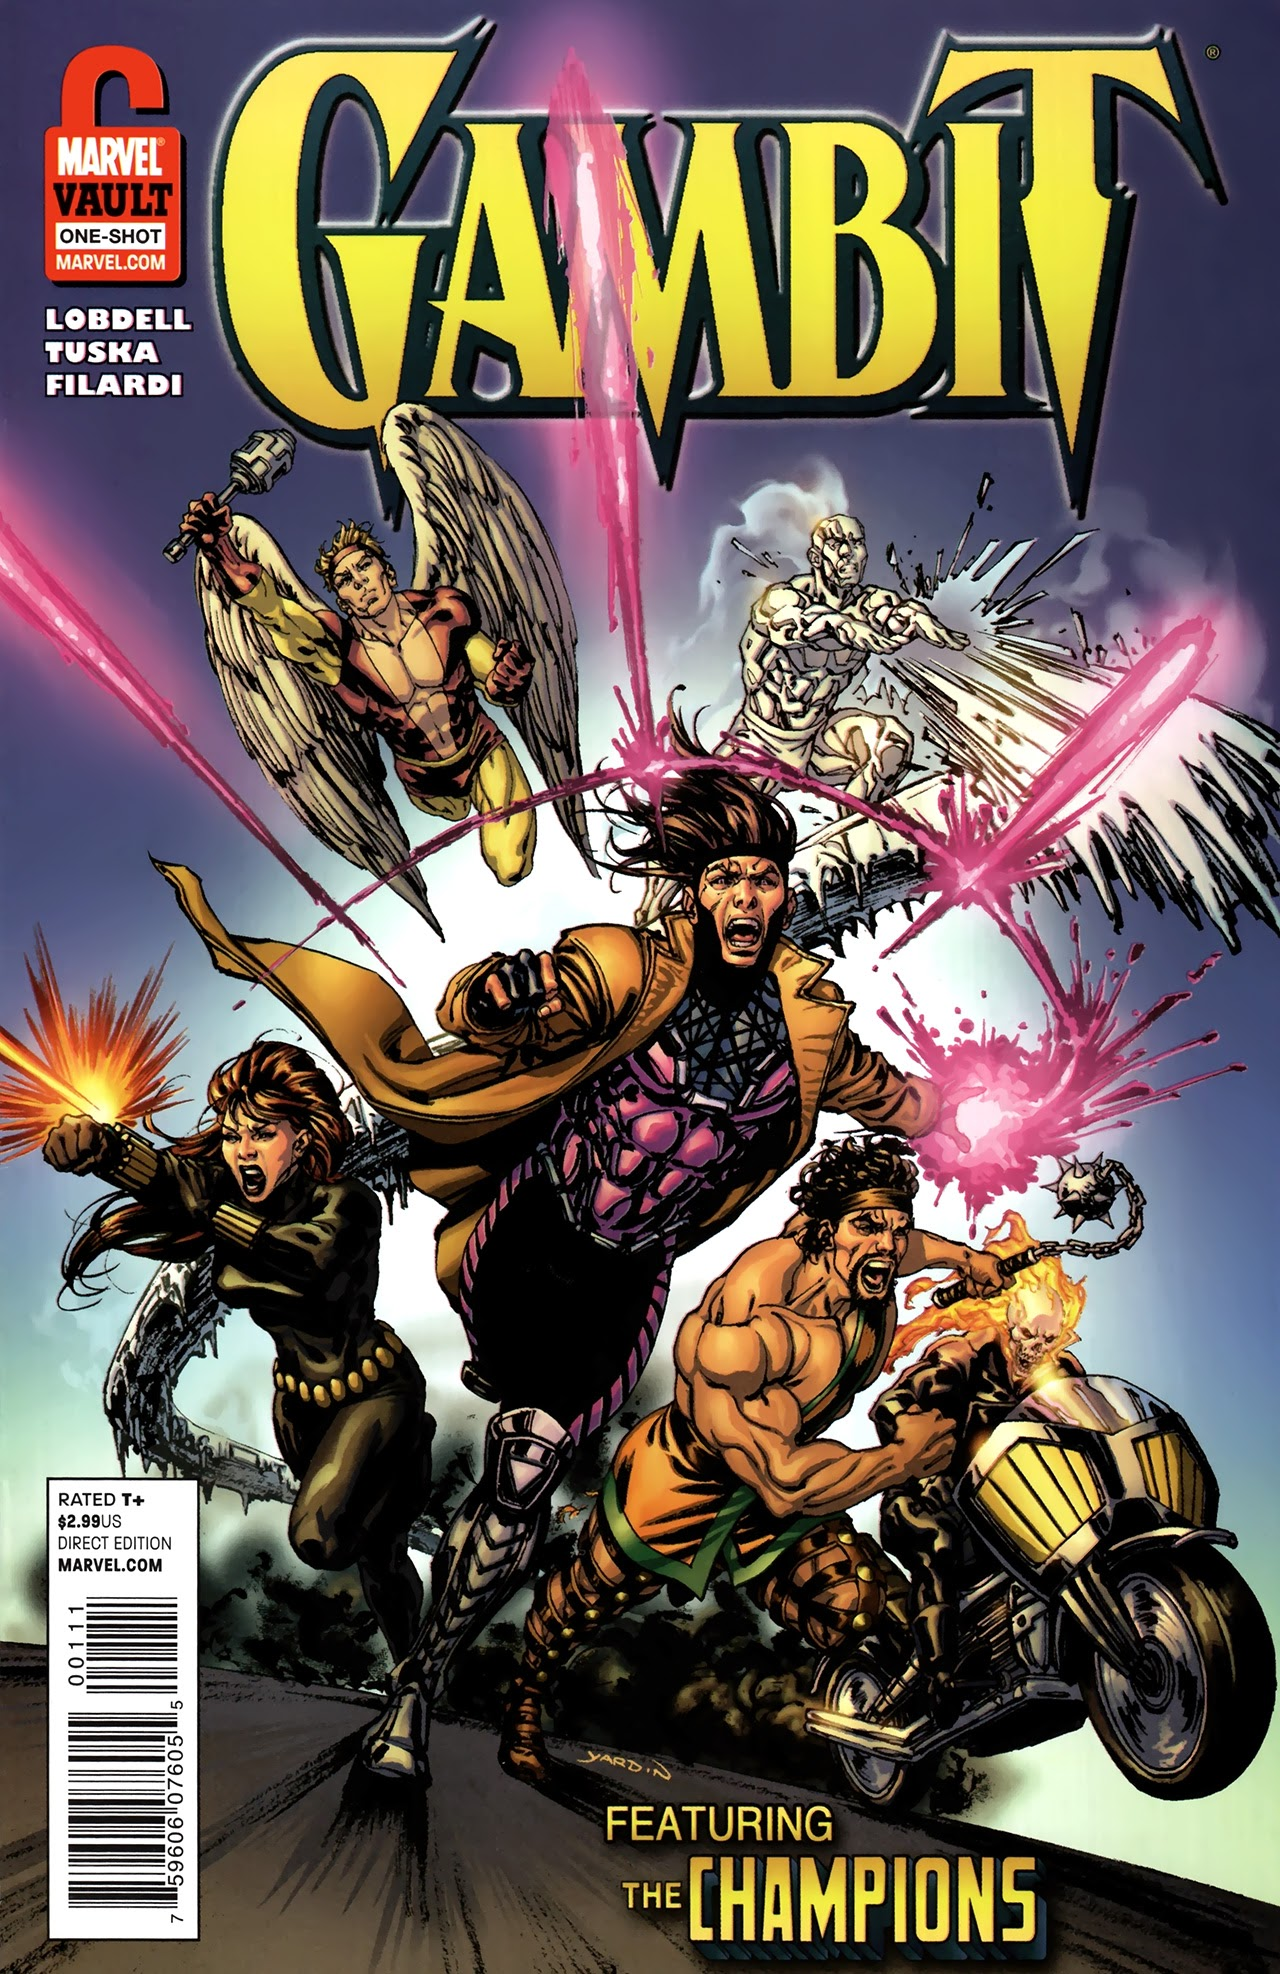 Gambit and the Champions: From The Marvel Vault Full Page 1